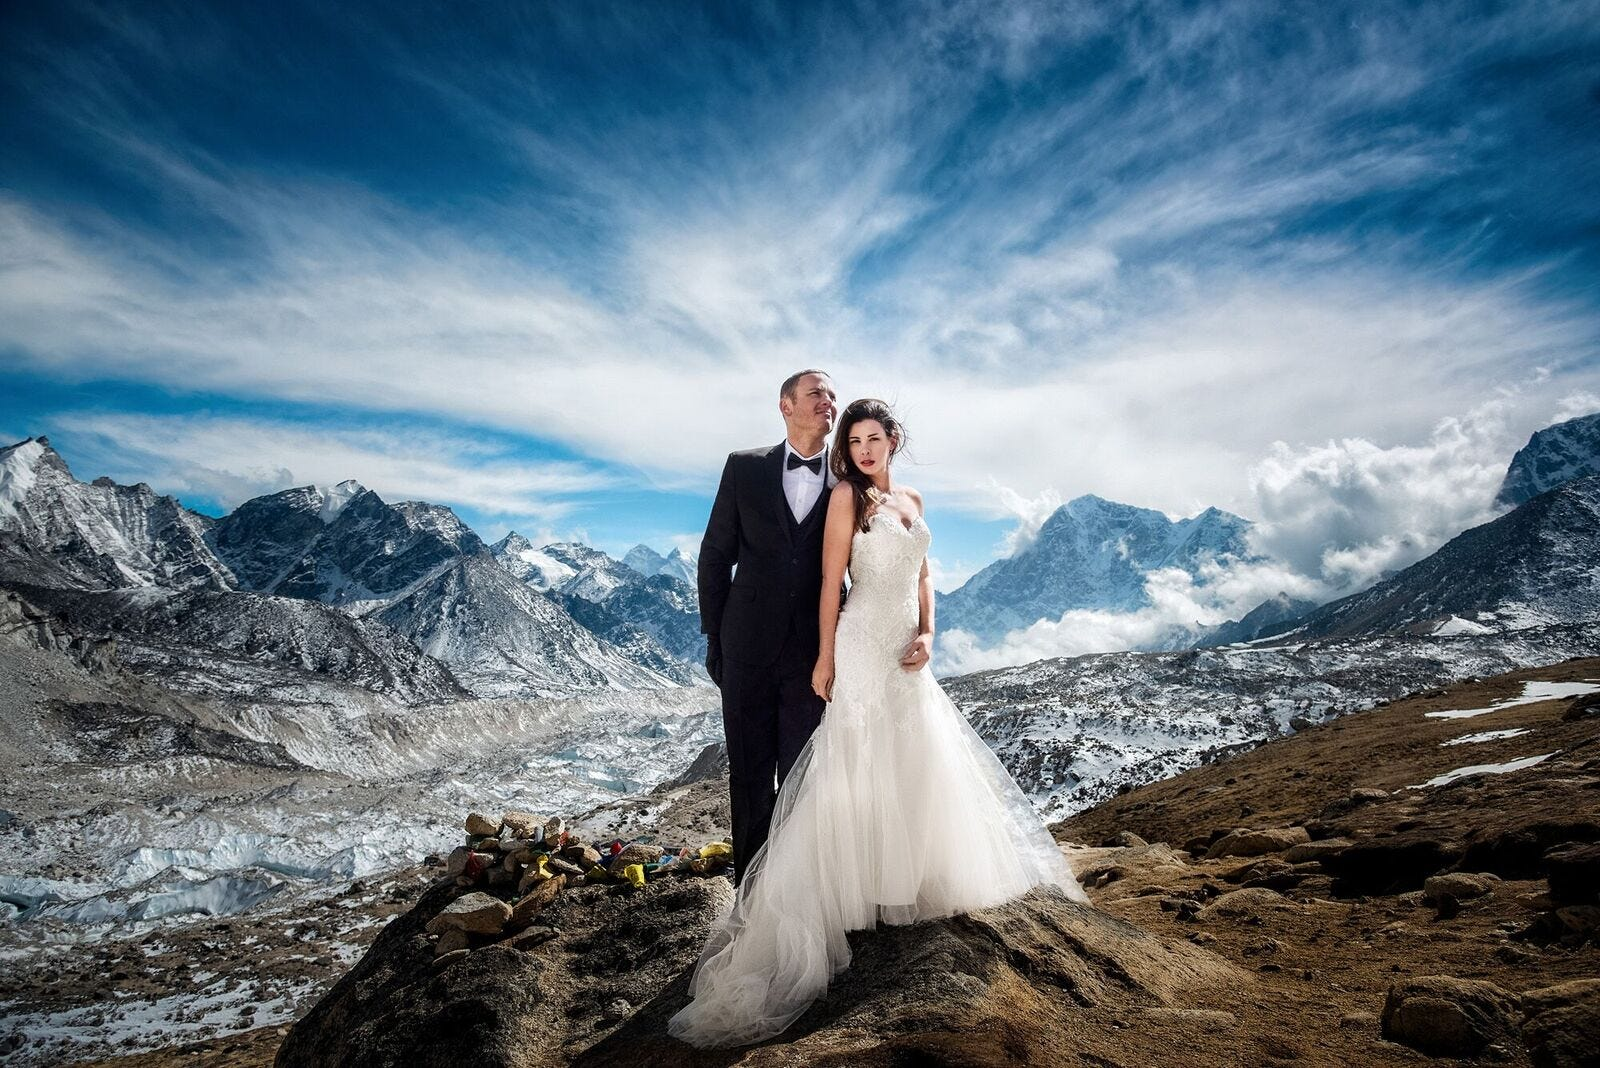 This Couple Got Married on Mt. Everest and the Wedding Pics Are Over the Top